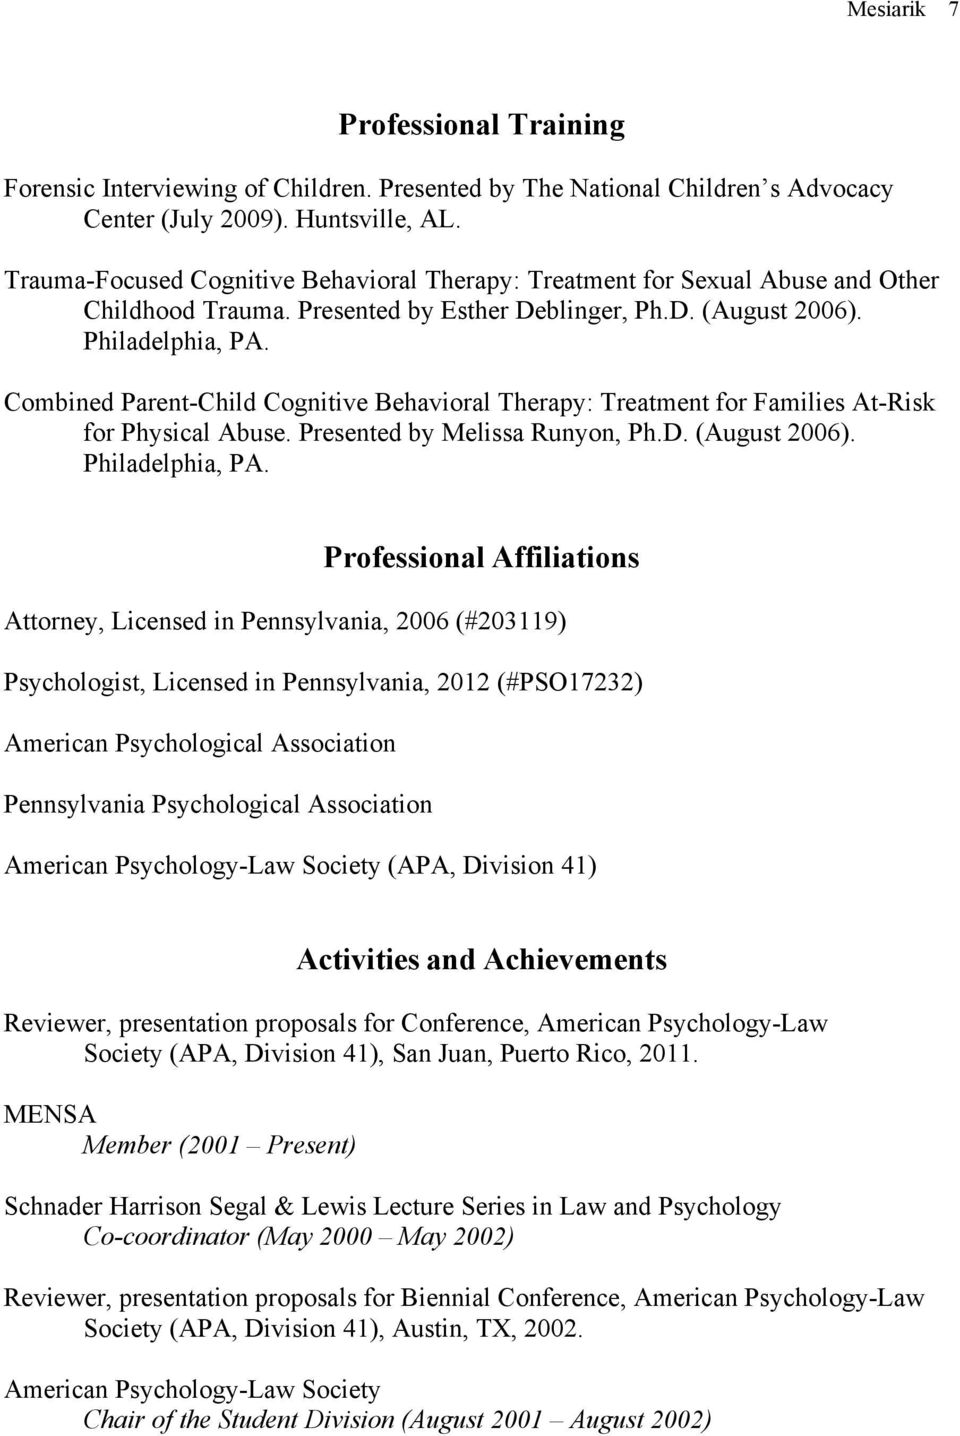 Combined Parent-Child Cognitive Behavioral Therapy: Treatment for Families At-Risk for Physical Abuse. Presented by Melissa Runyon, Ph.D. (August 2006). Philadelphia, PA.